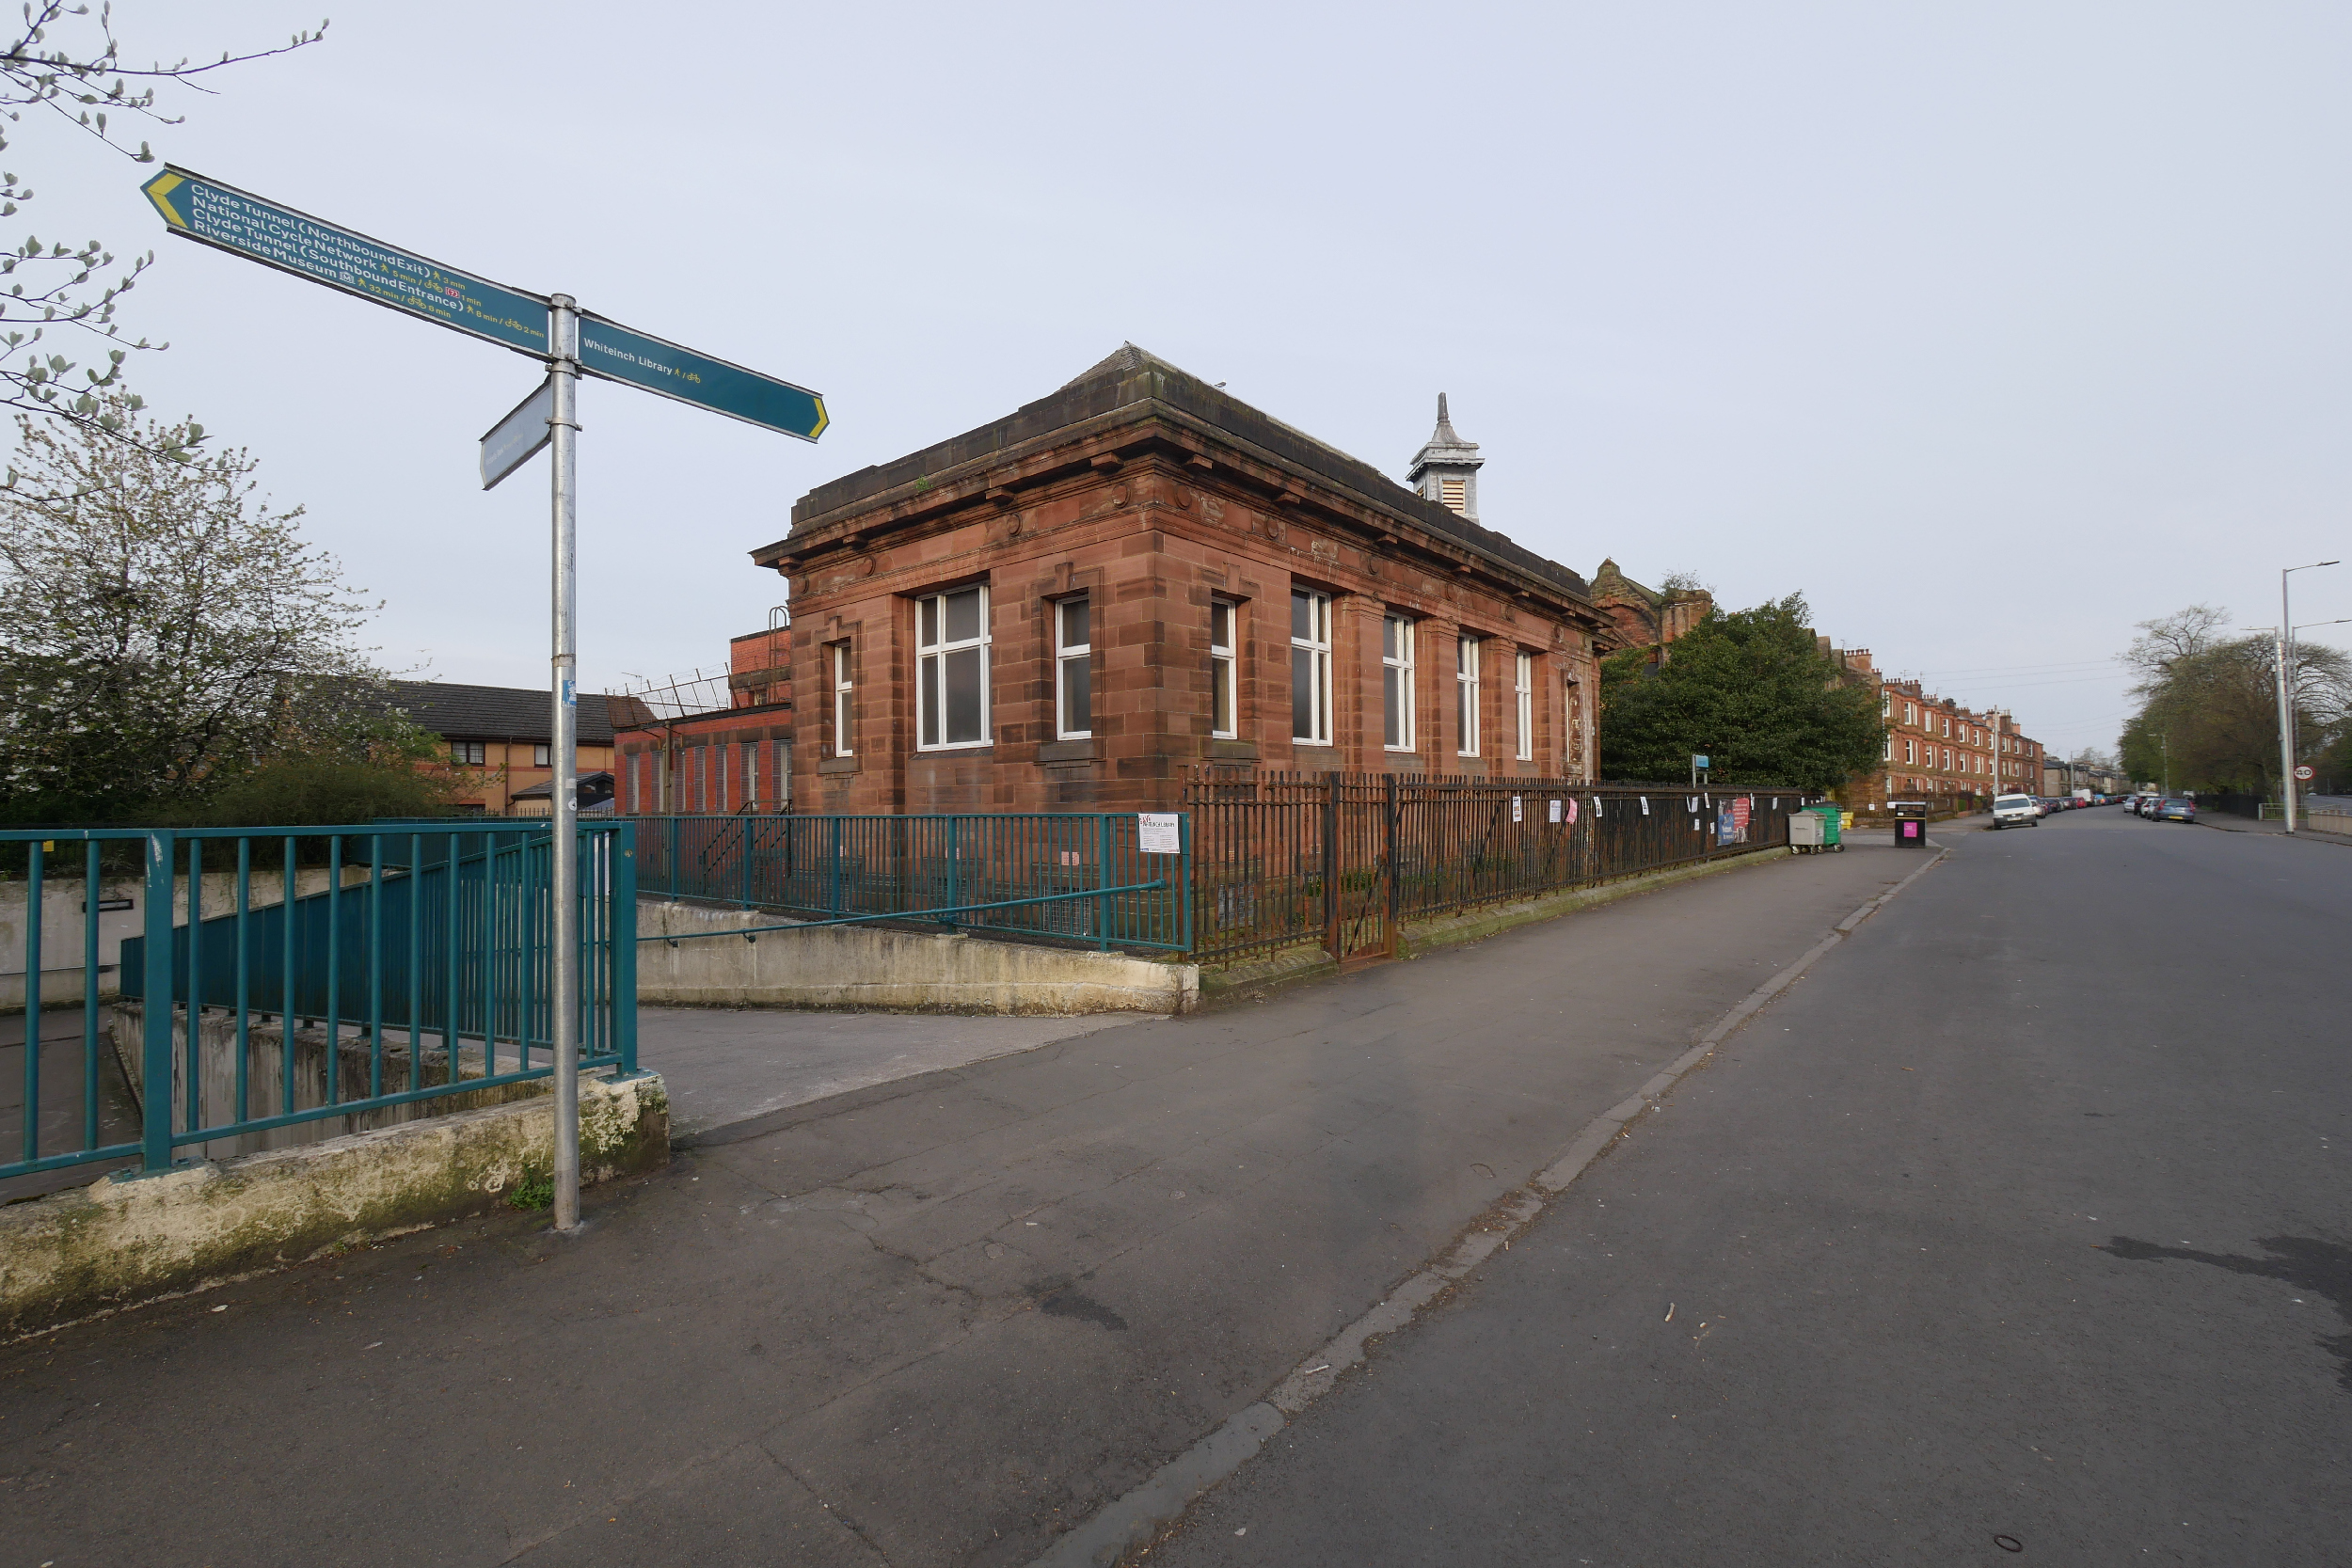 An image of Whiteinch library, Glasgow - Scottish News